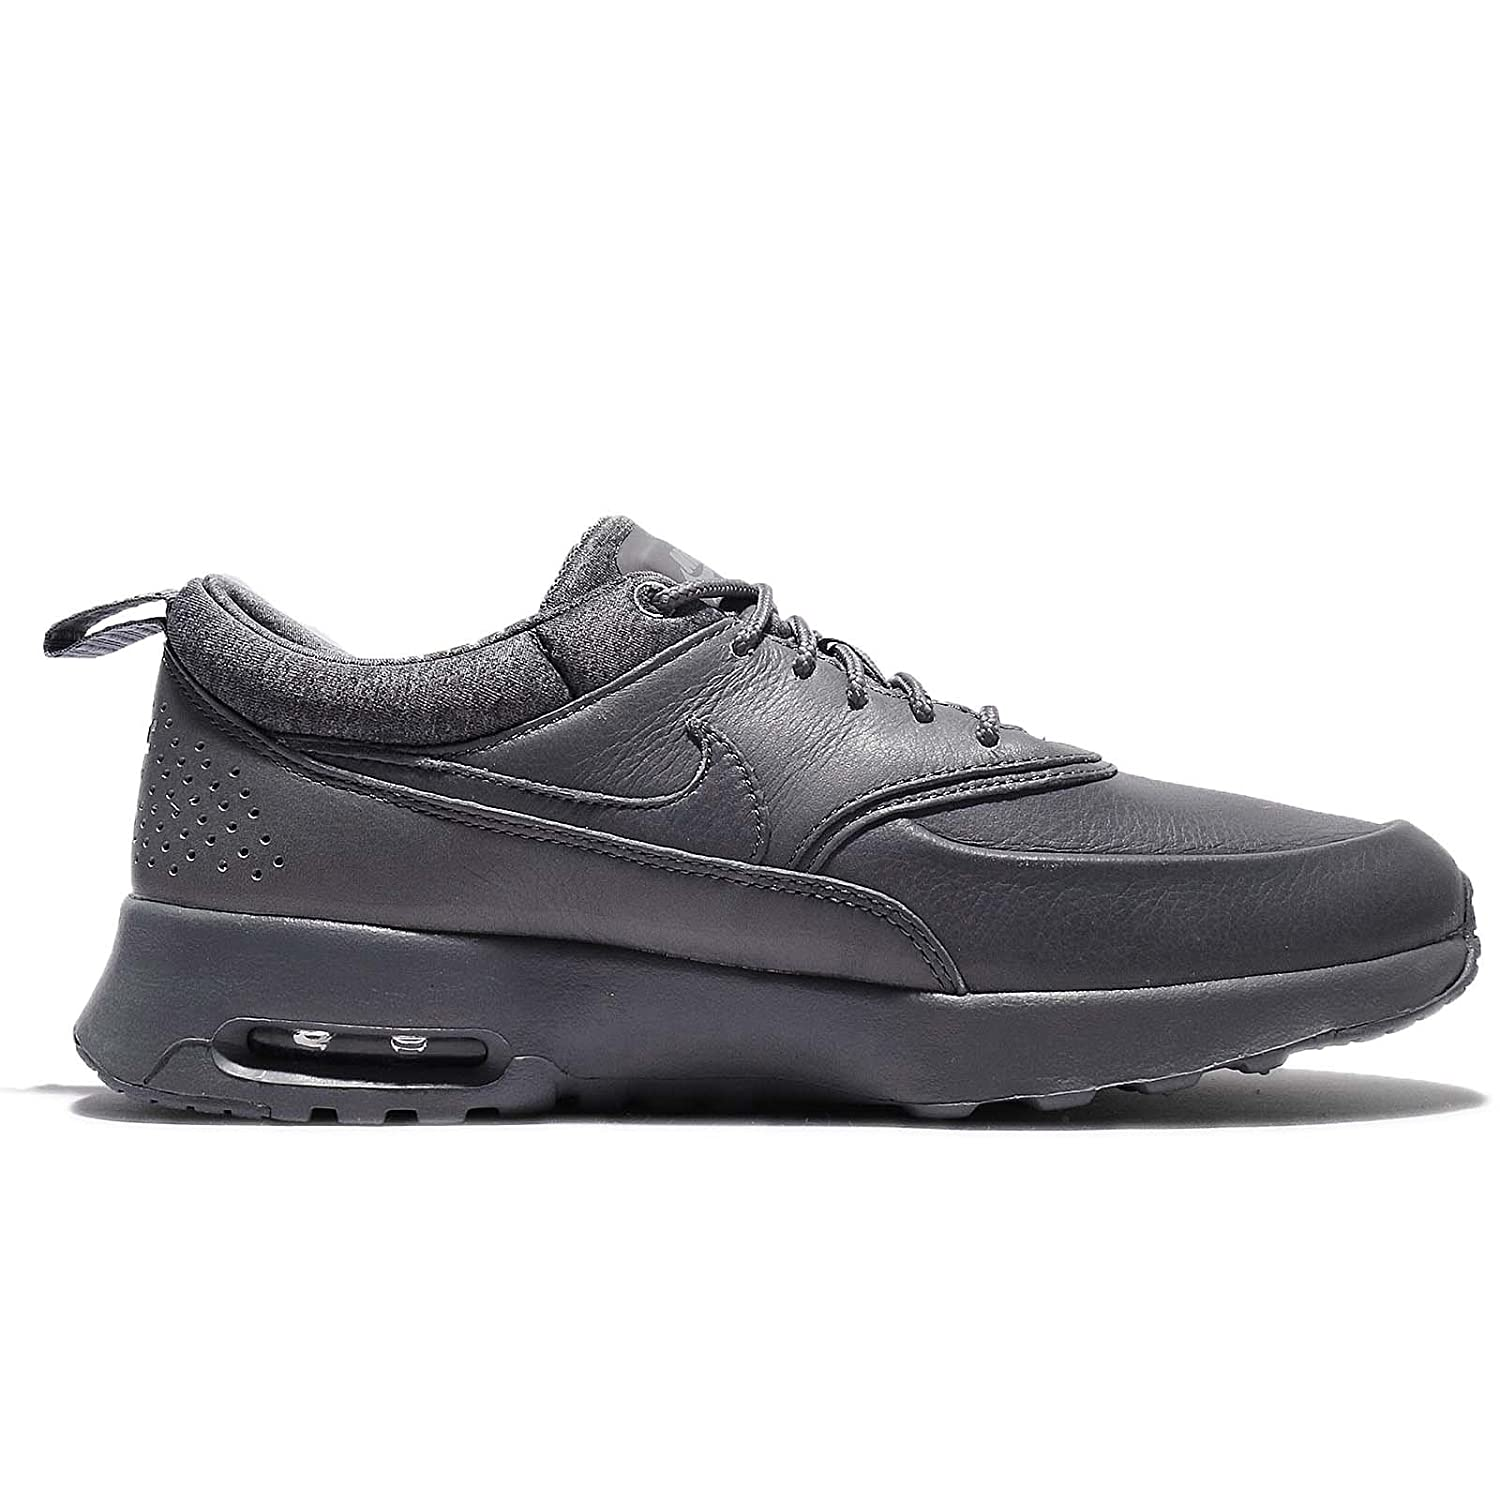 Nike Air Max Thea Pinnacle Black Womens | The Sole Supplier